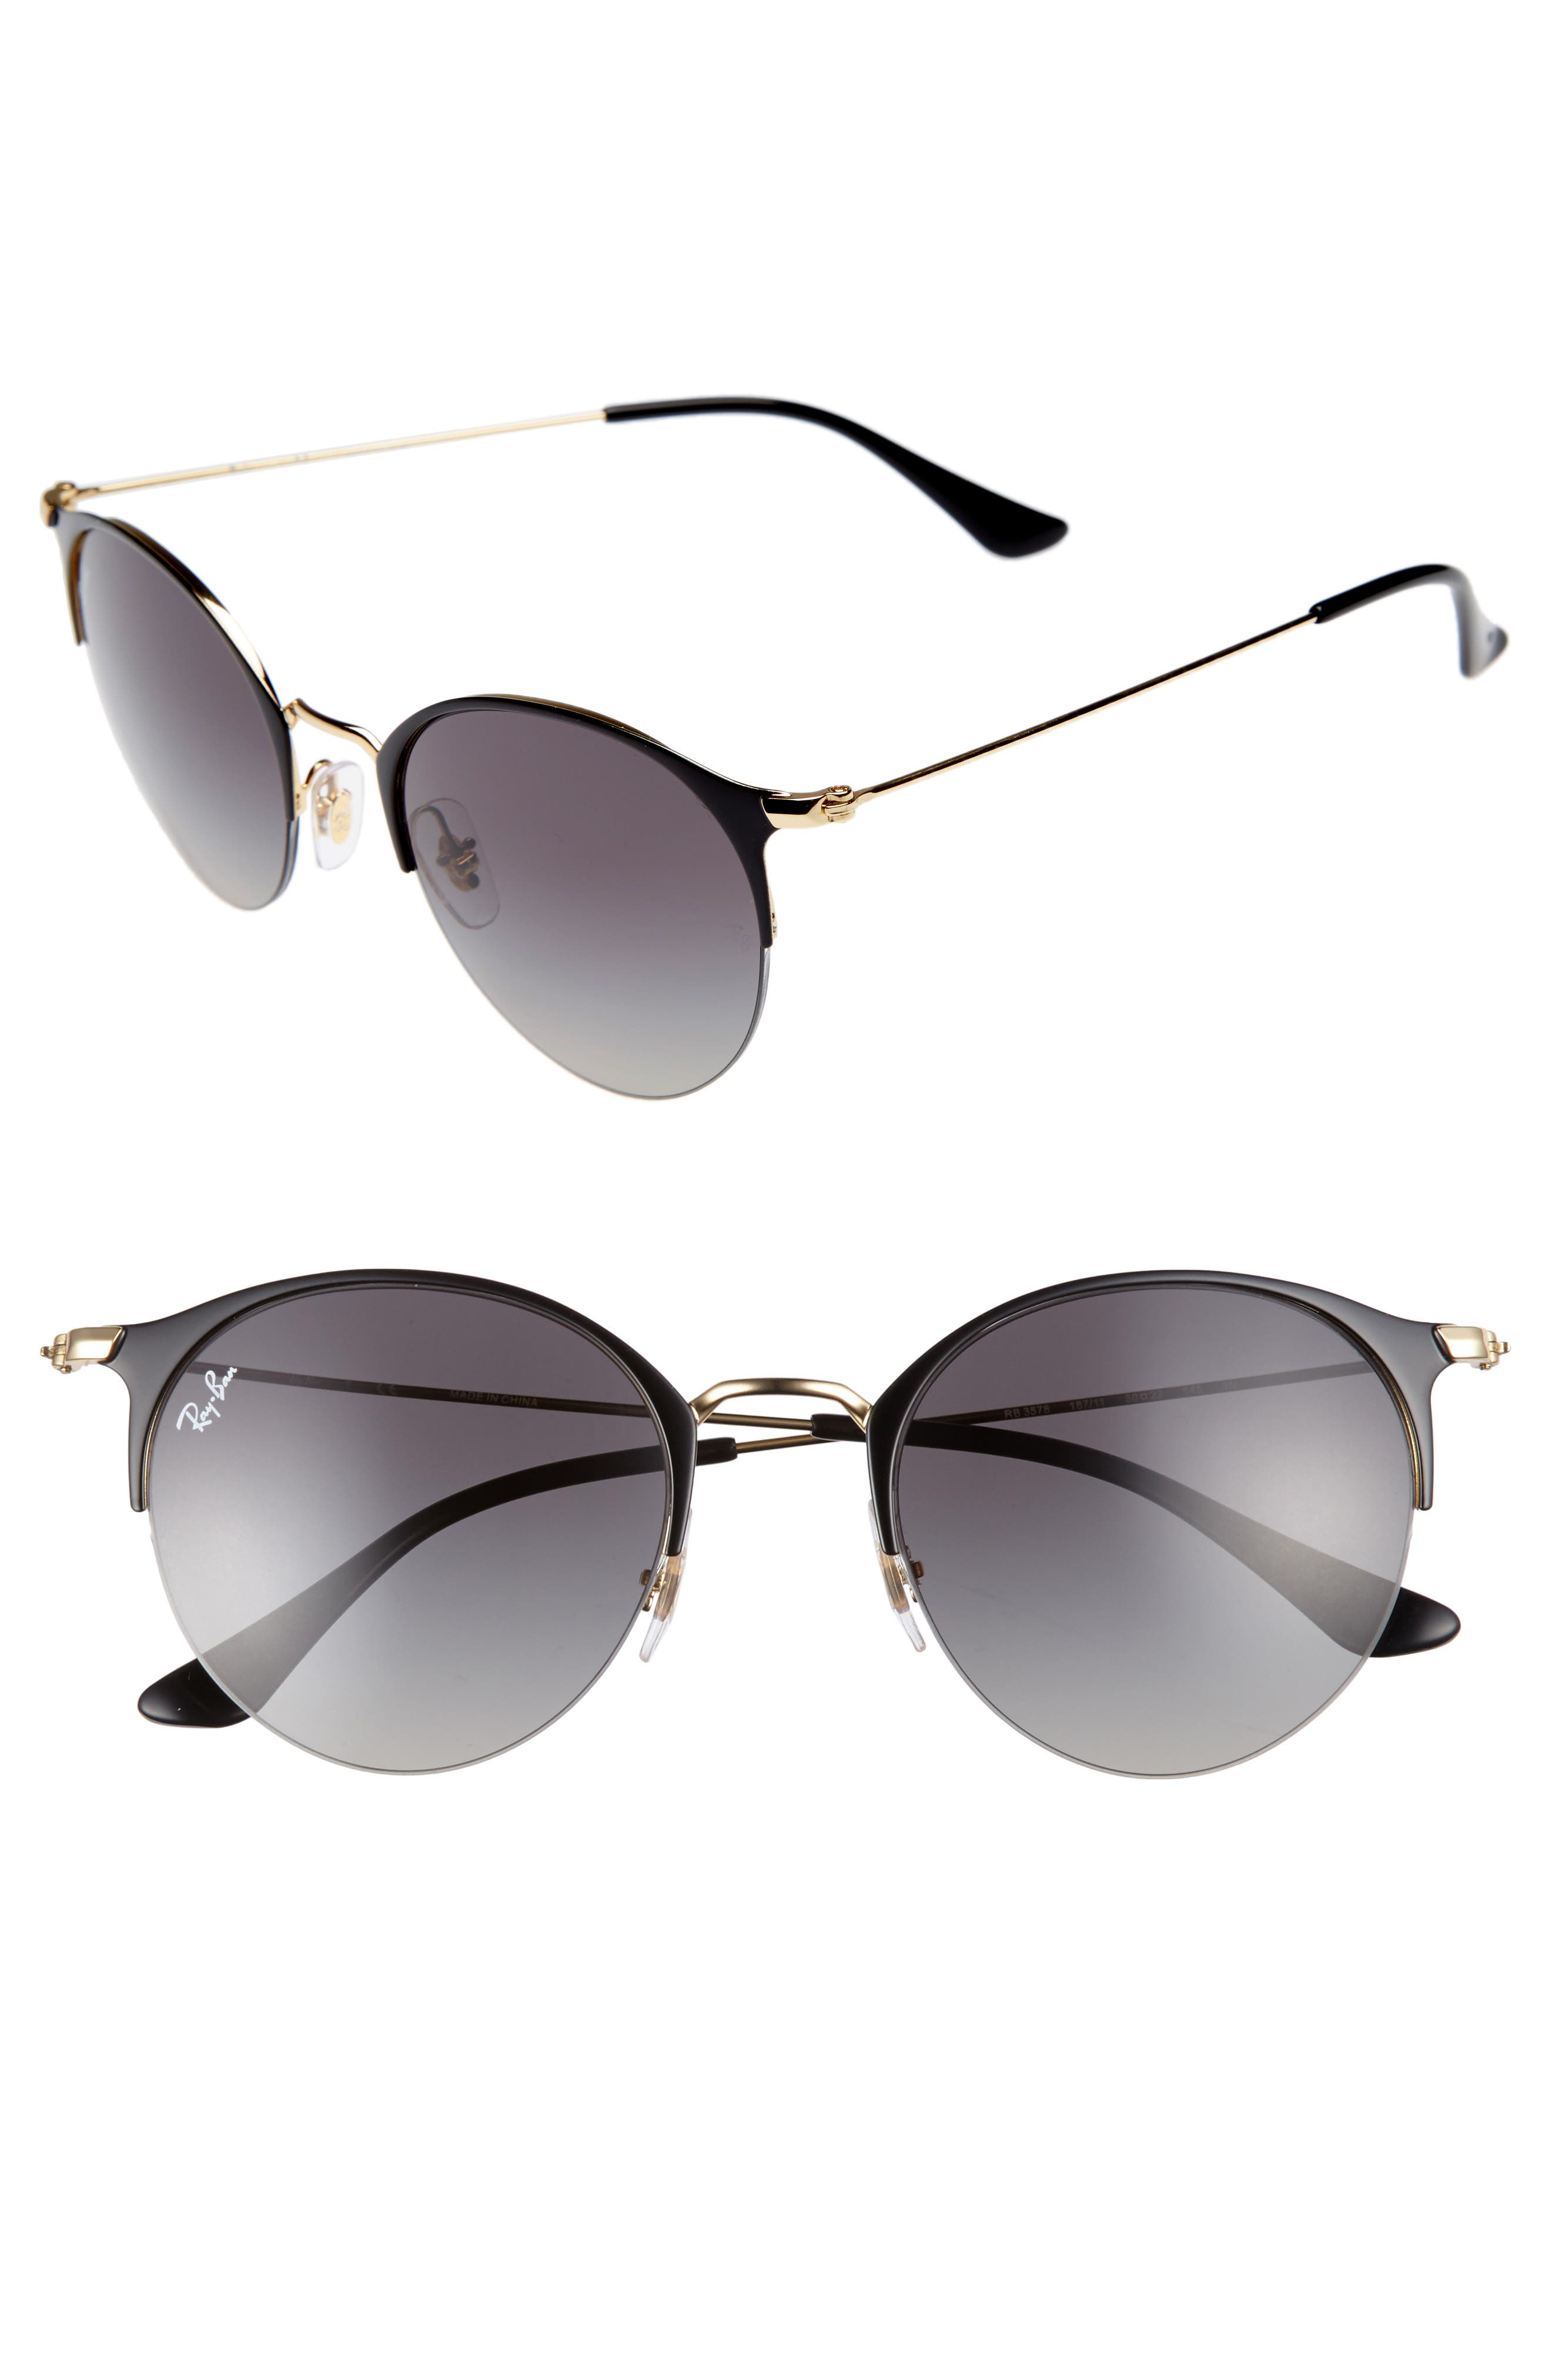 50mm Round Clubmaster Sunglasses,                             Main thumbnail 4, color,